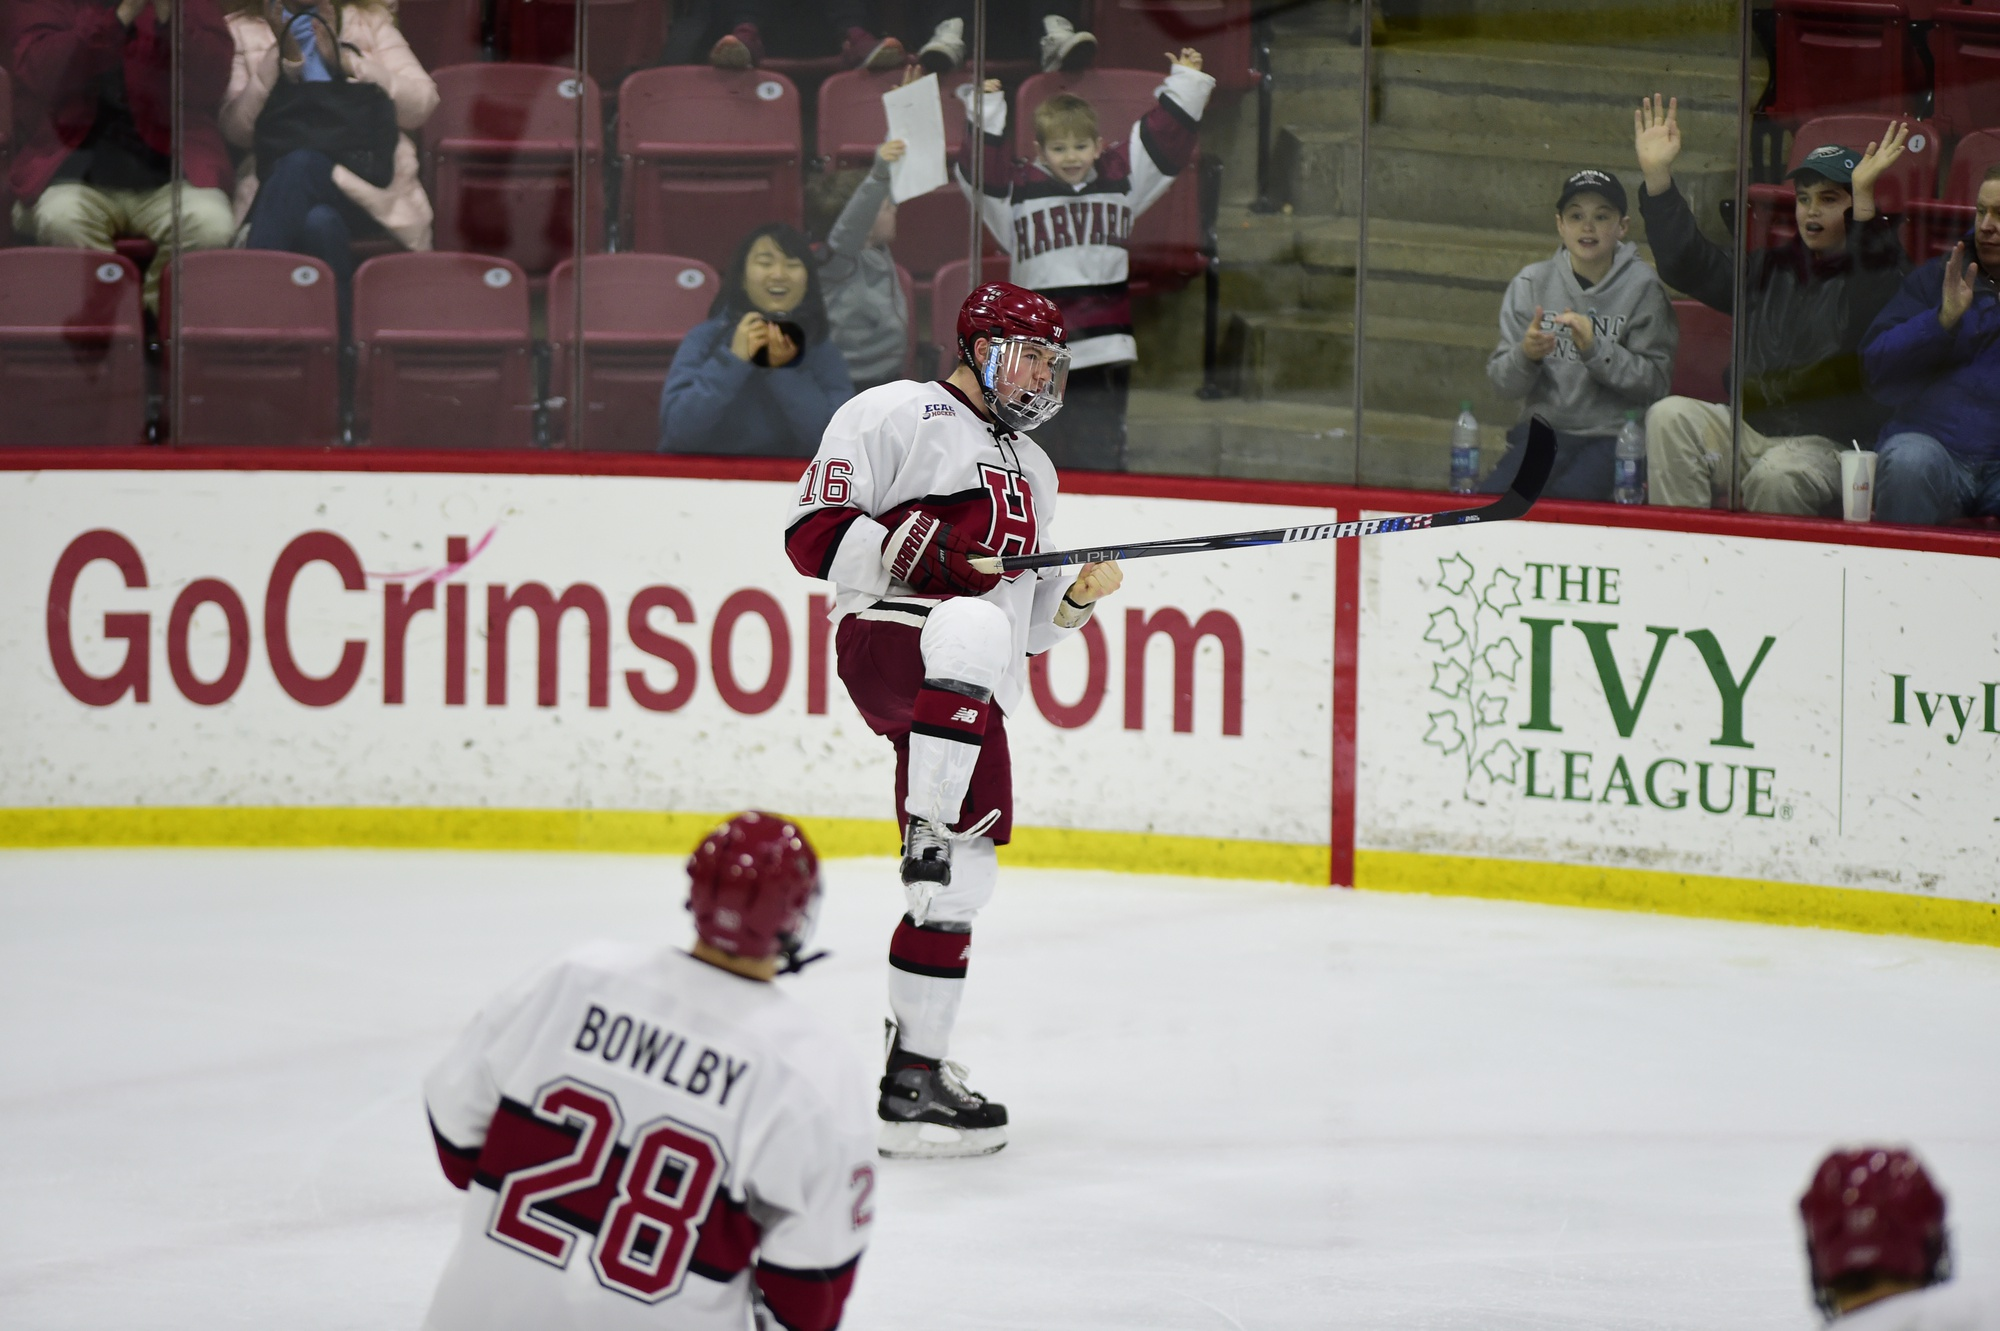 Donato, pictured here after completing his game-three hat trick against Dartmouth in the ECAC quarterfinals, potted a trio of pucks three times this season.